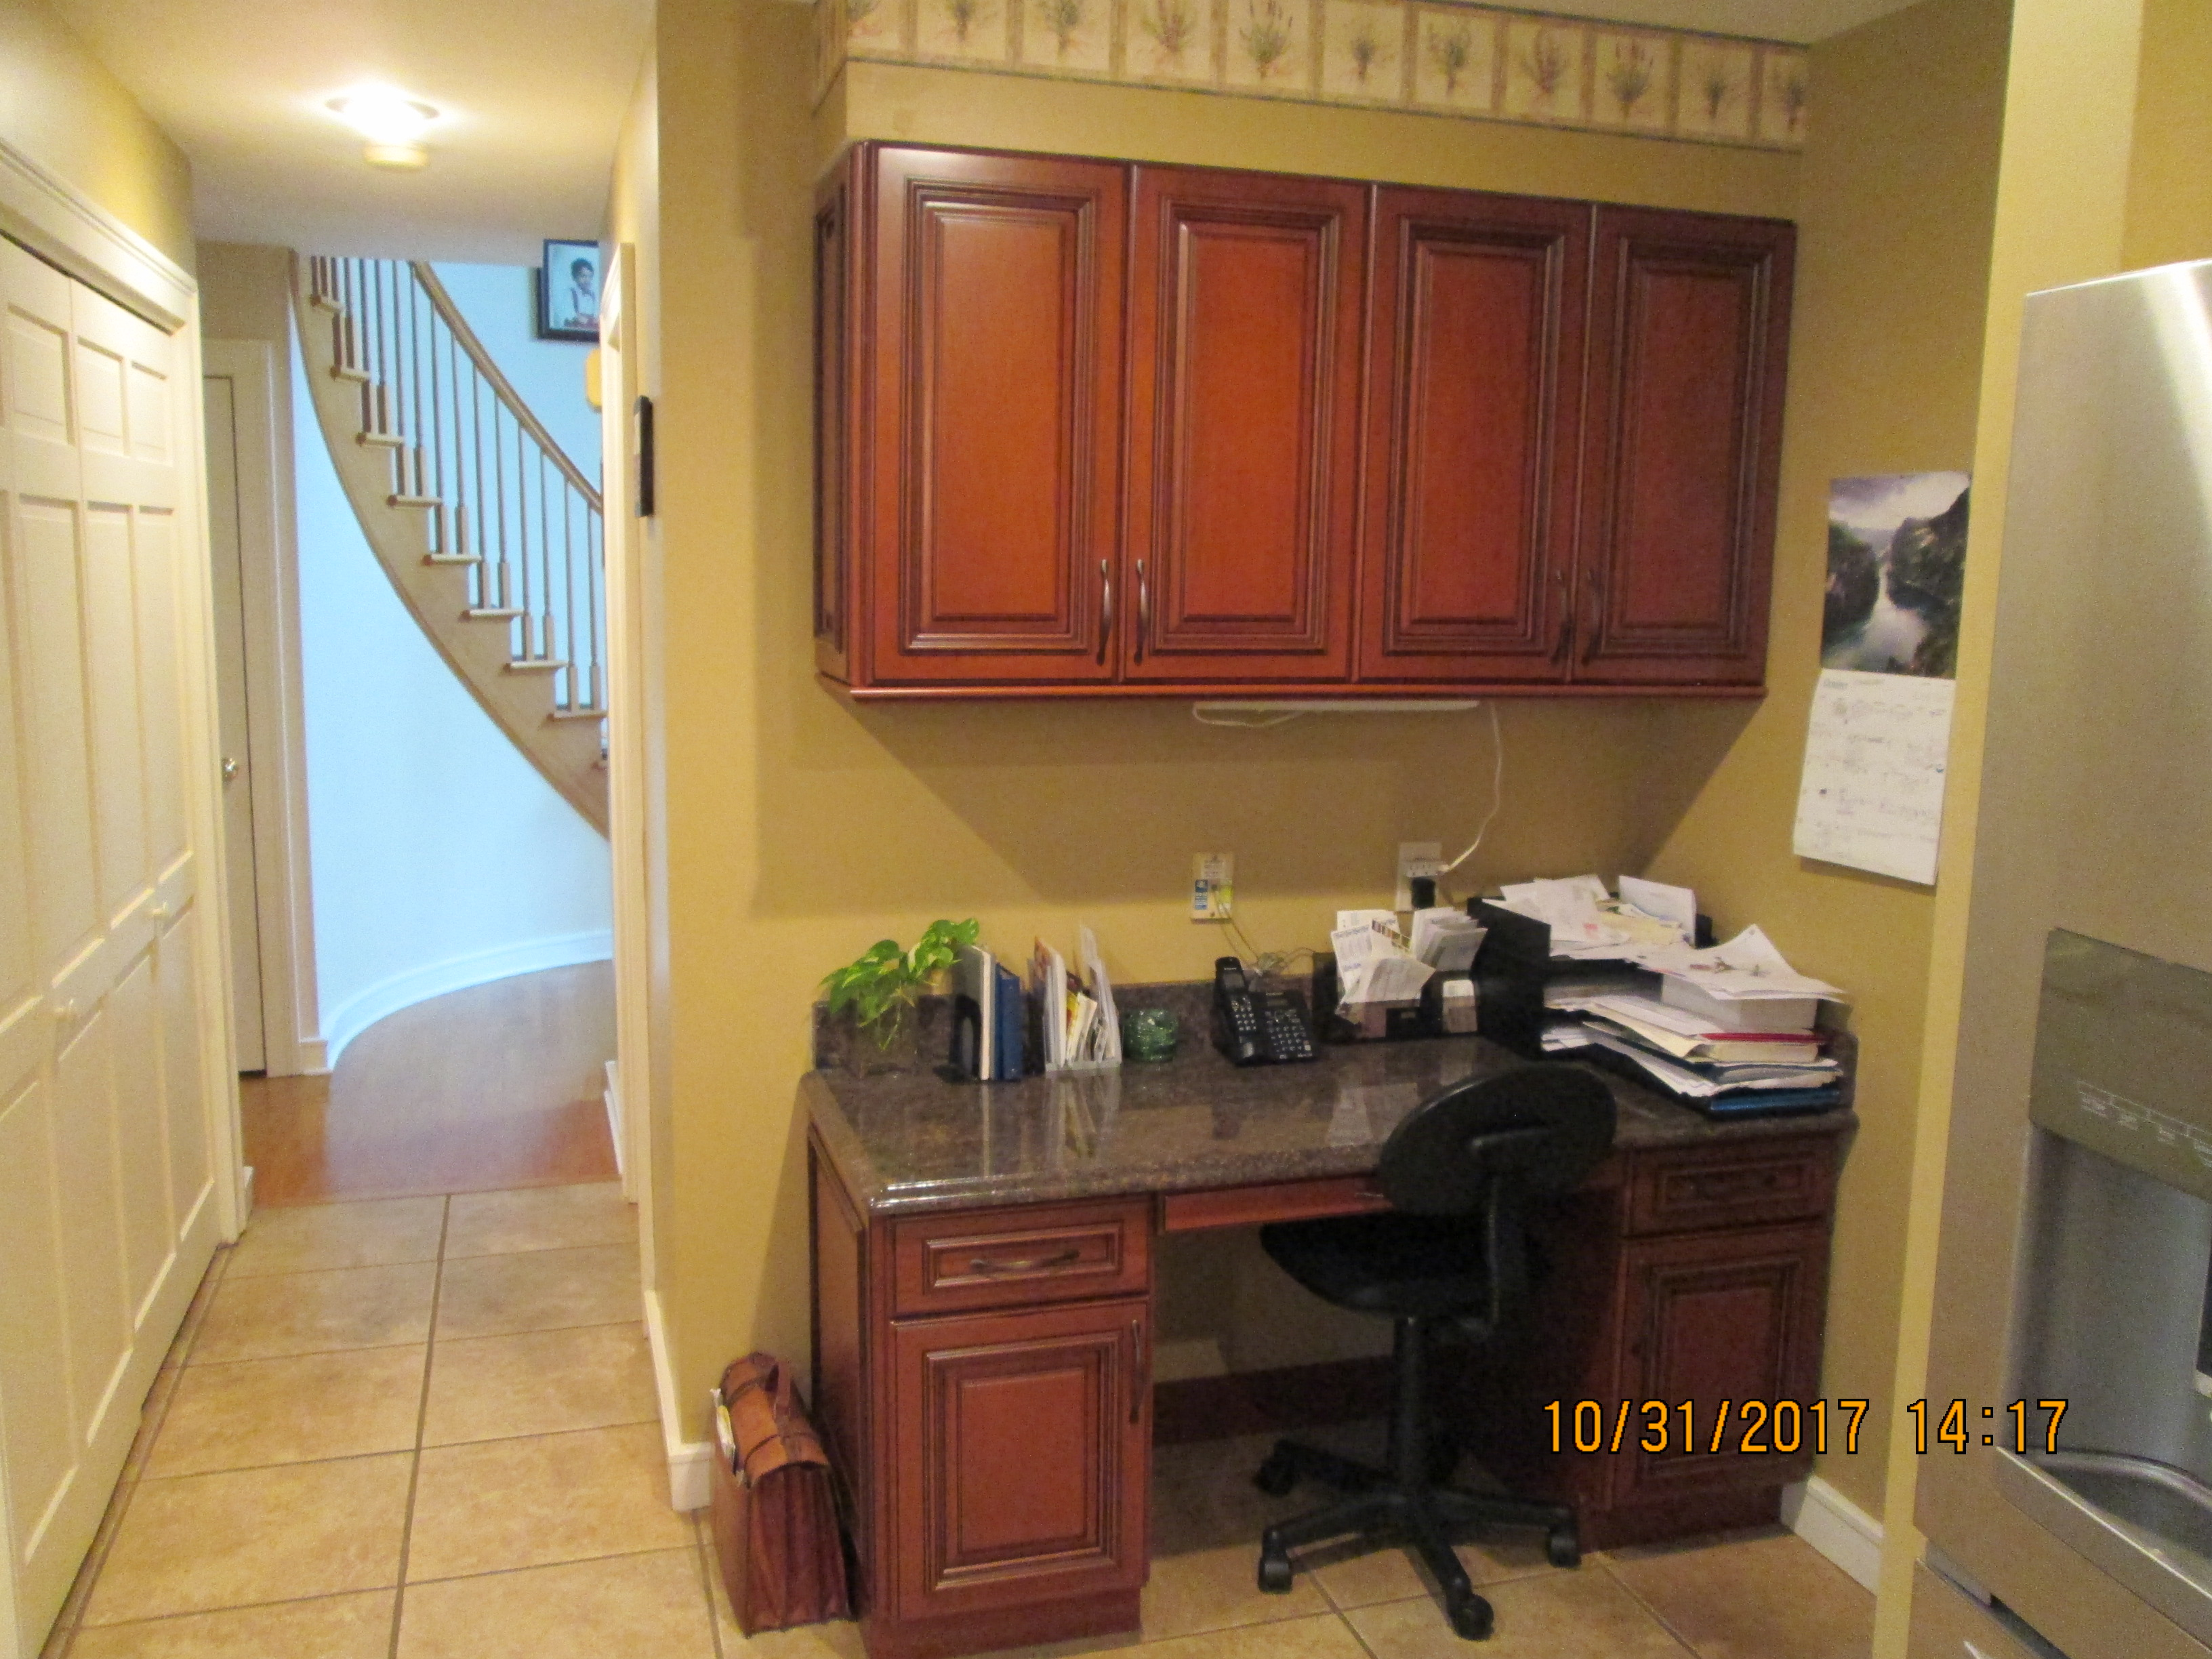 kitchen cabinets syracuse ny designer online  concepts in wood